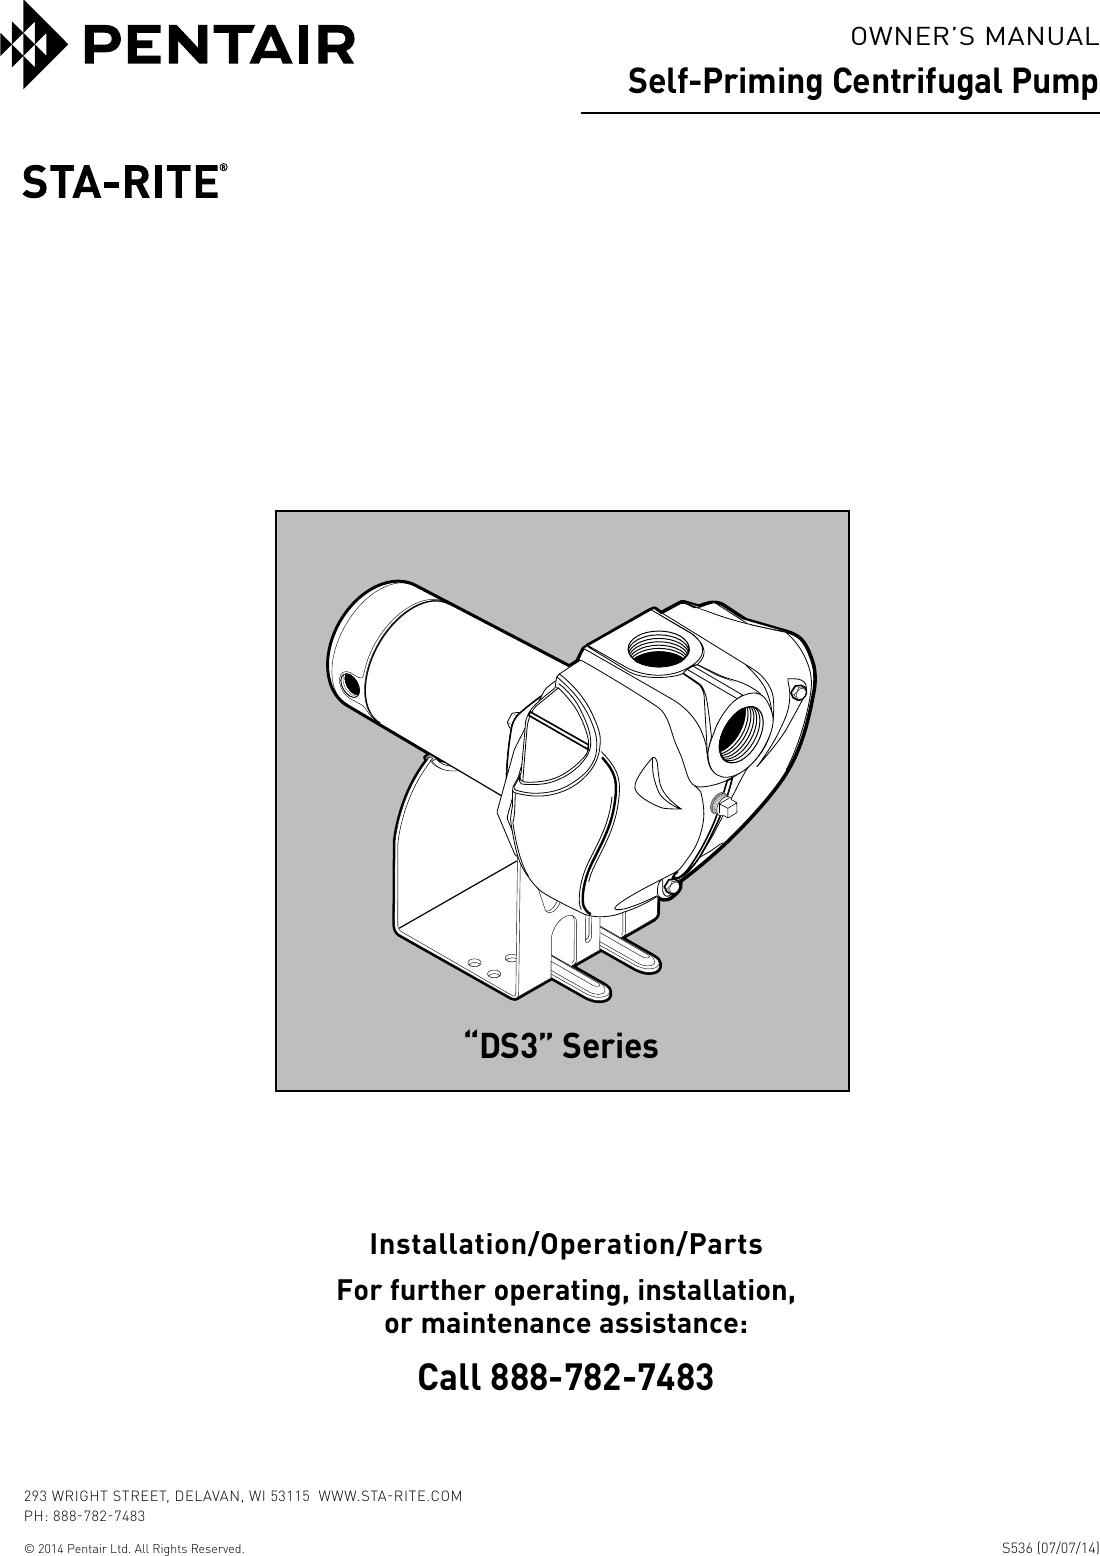 539612 2 Sta Rite Pro Storm Ds3 Series Centrifugal Pump Owners Manual Wiring Diagram Page 1 Of 12